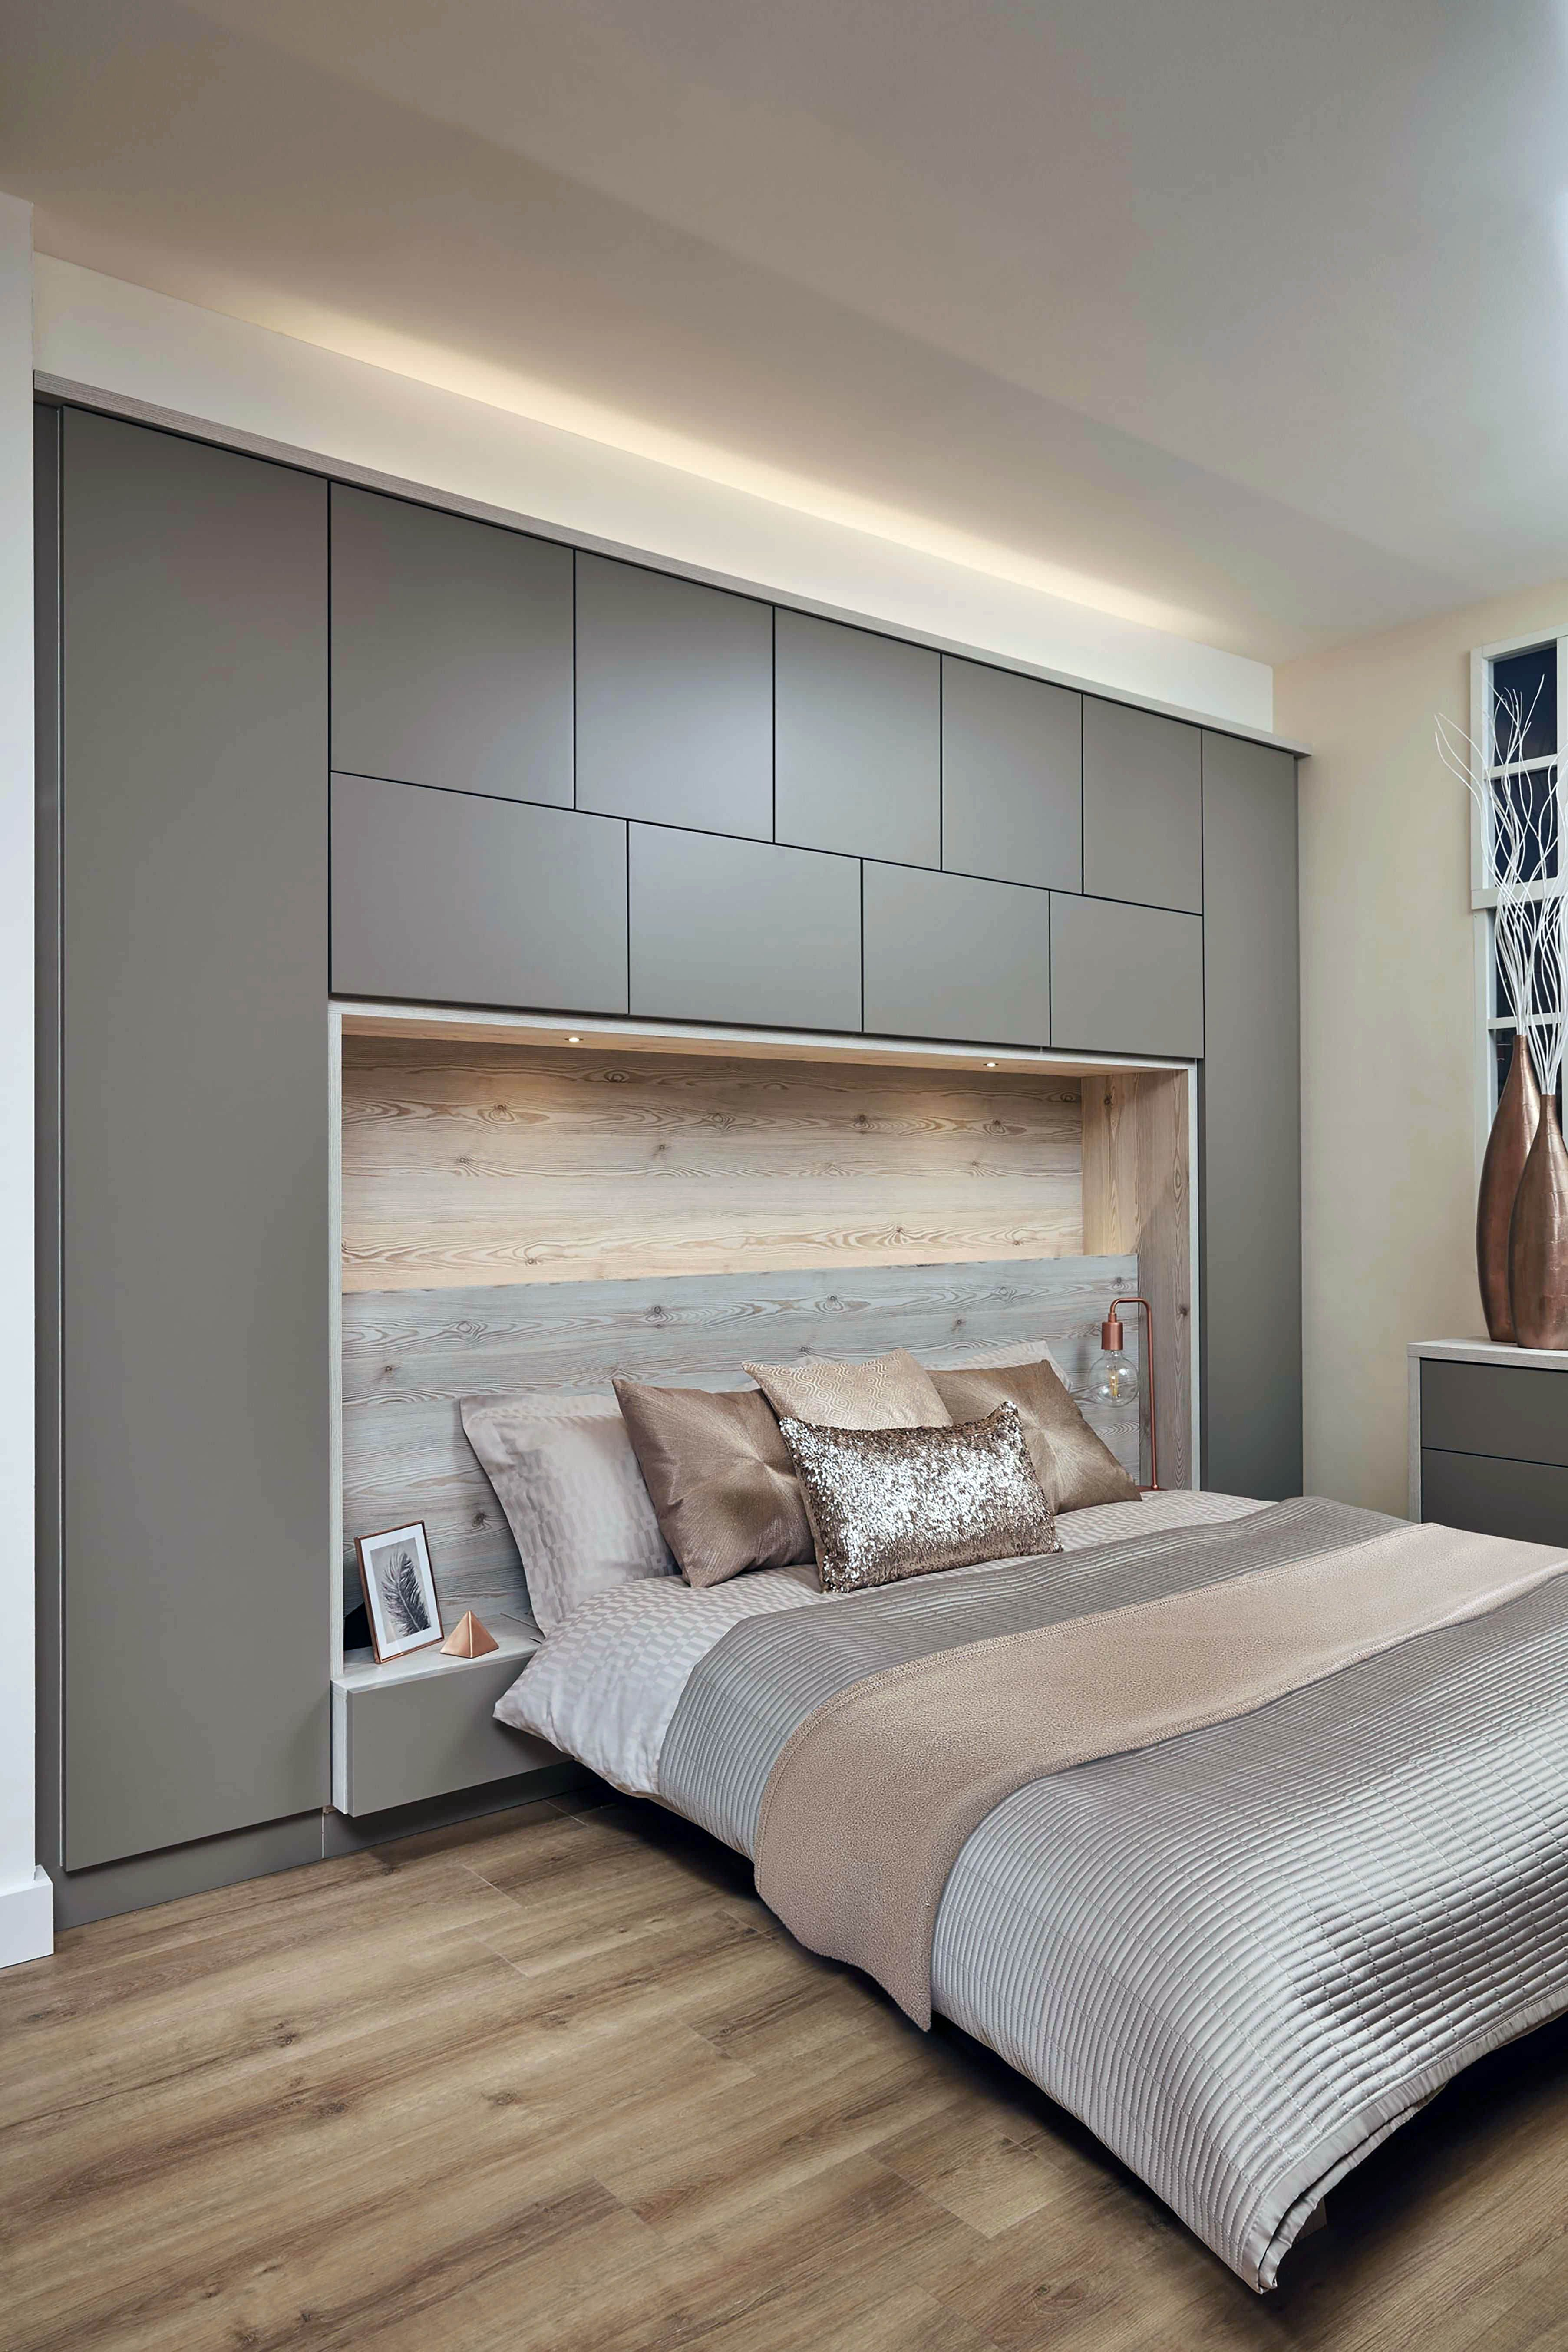 Elite master bedroom ideas color schemes only on homesable.com